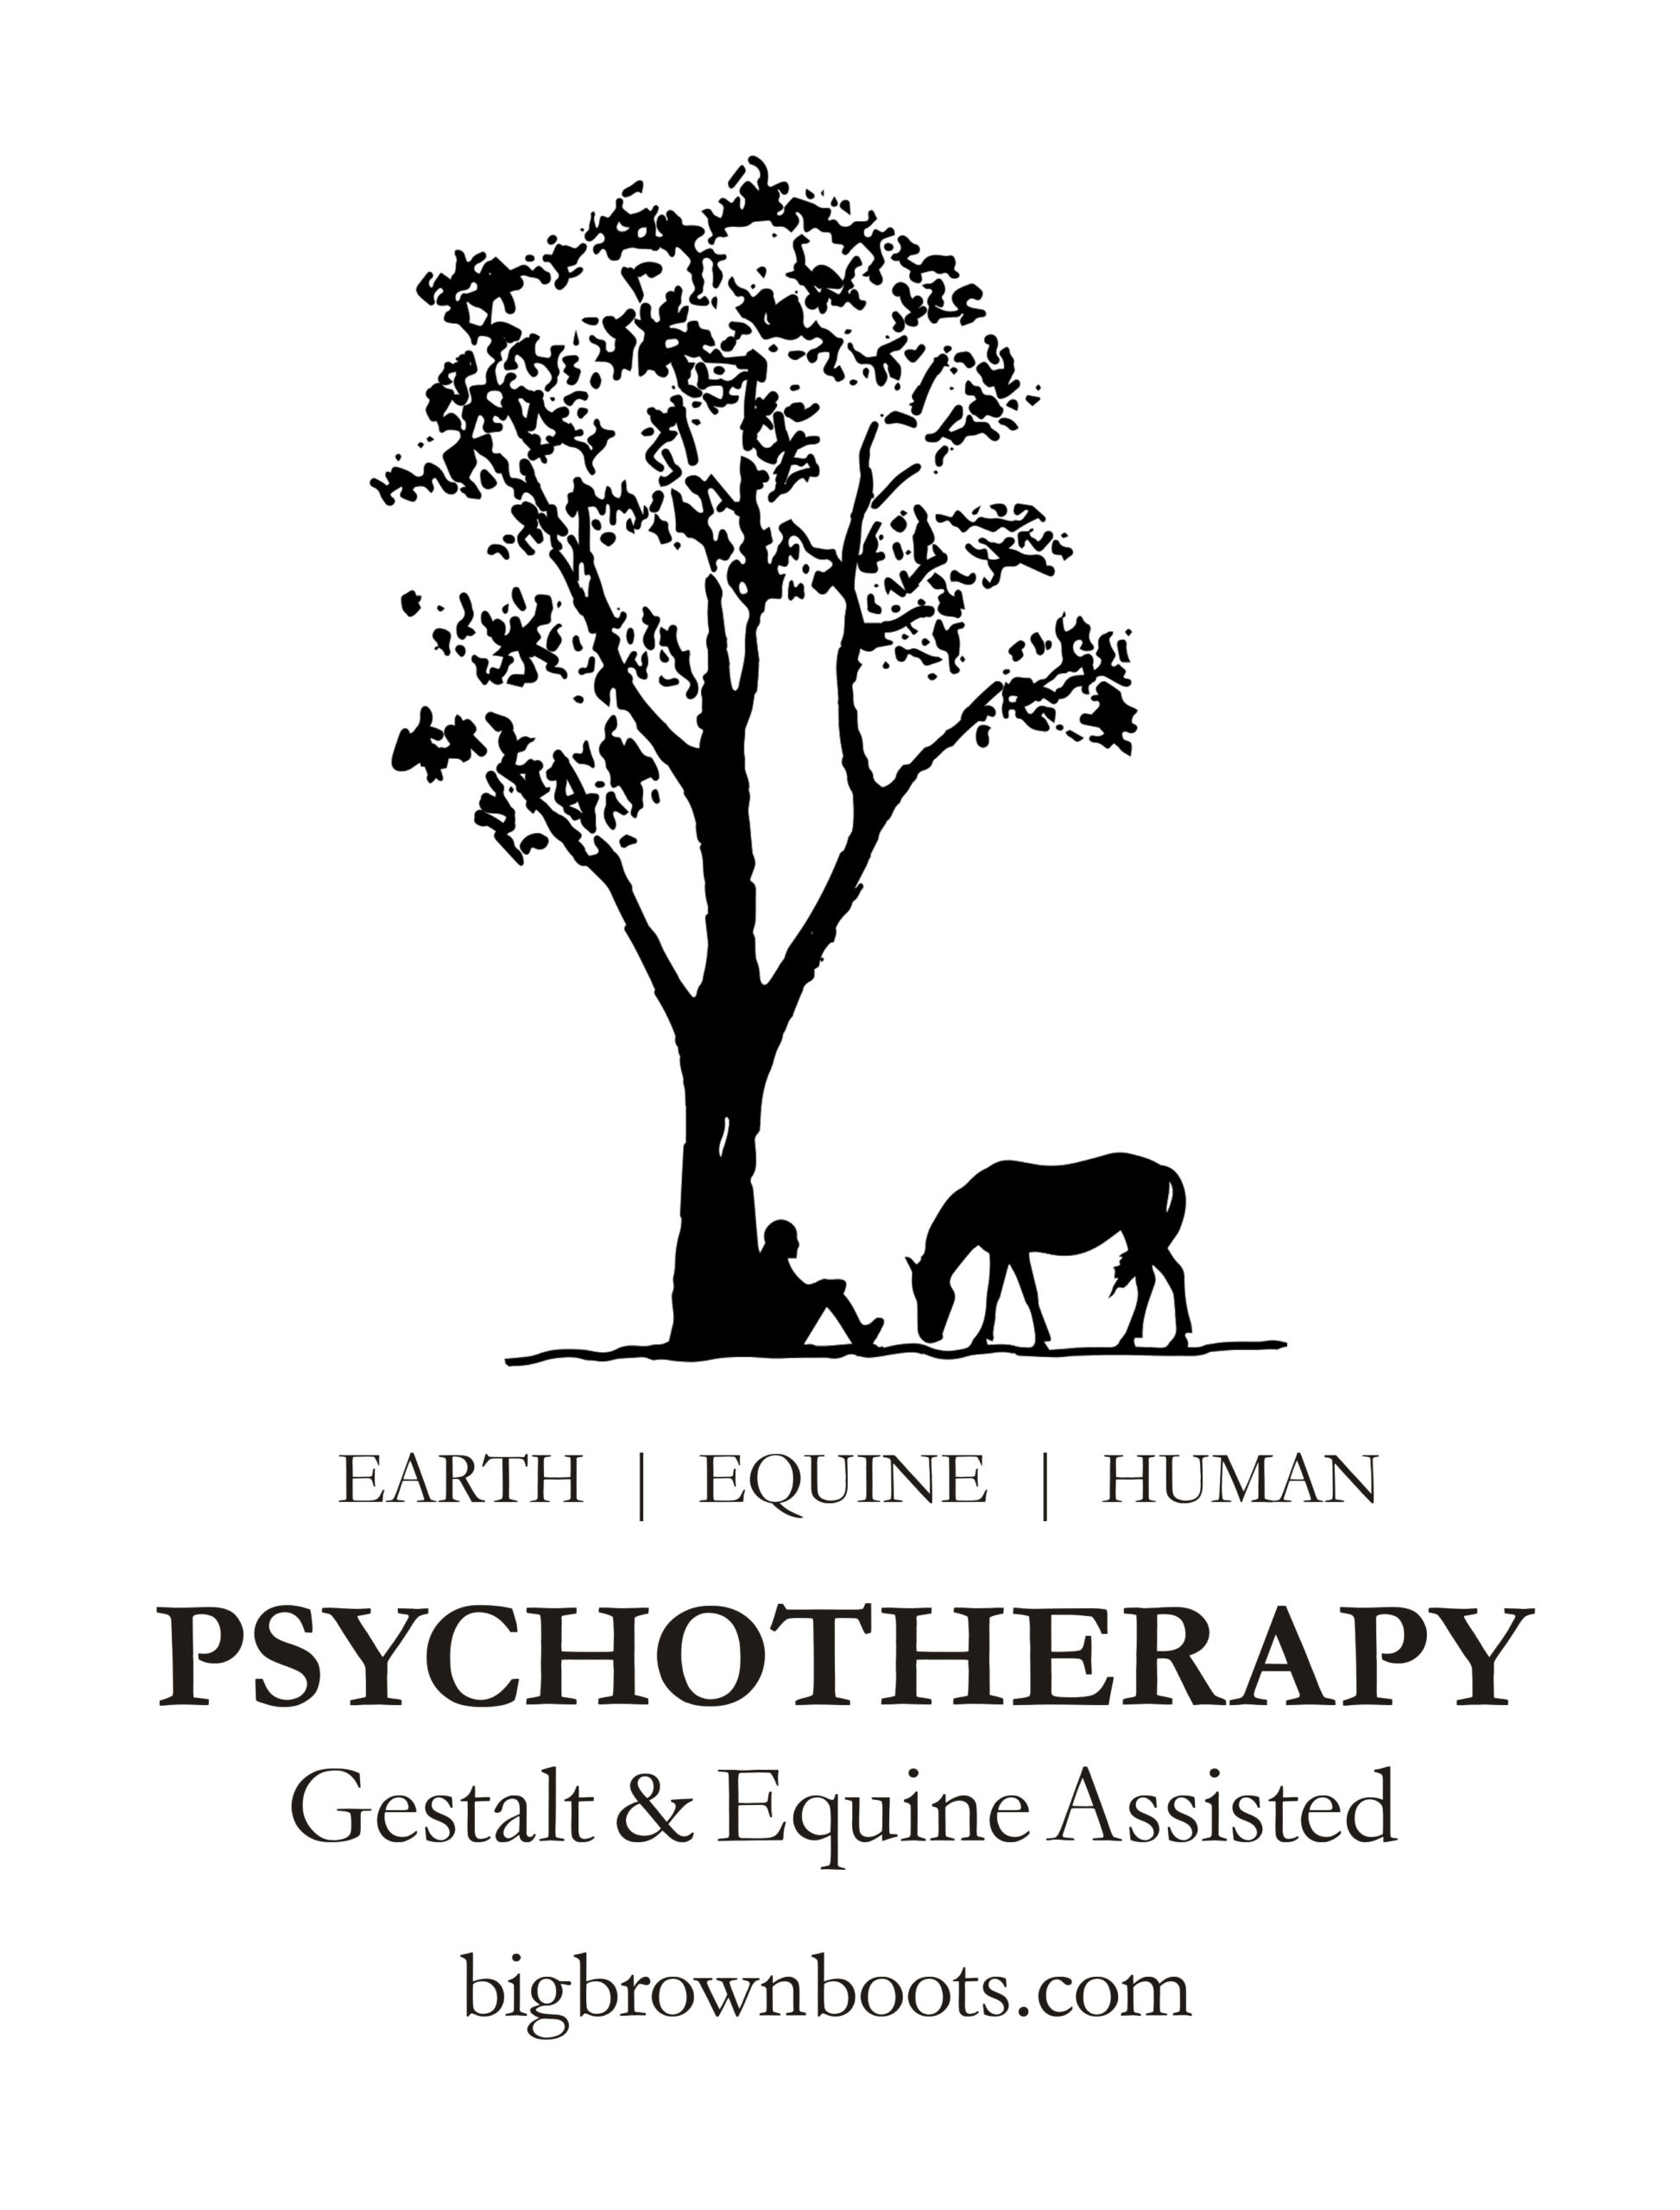 Big Brown Boots Psychotherapy - Gestalt & Equine Assisted